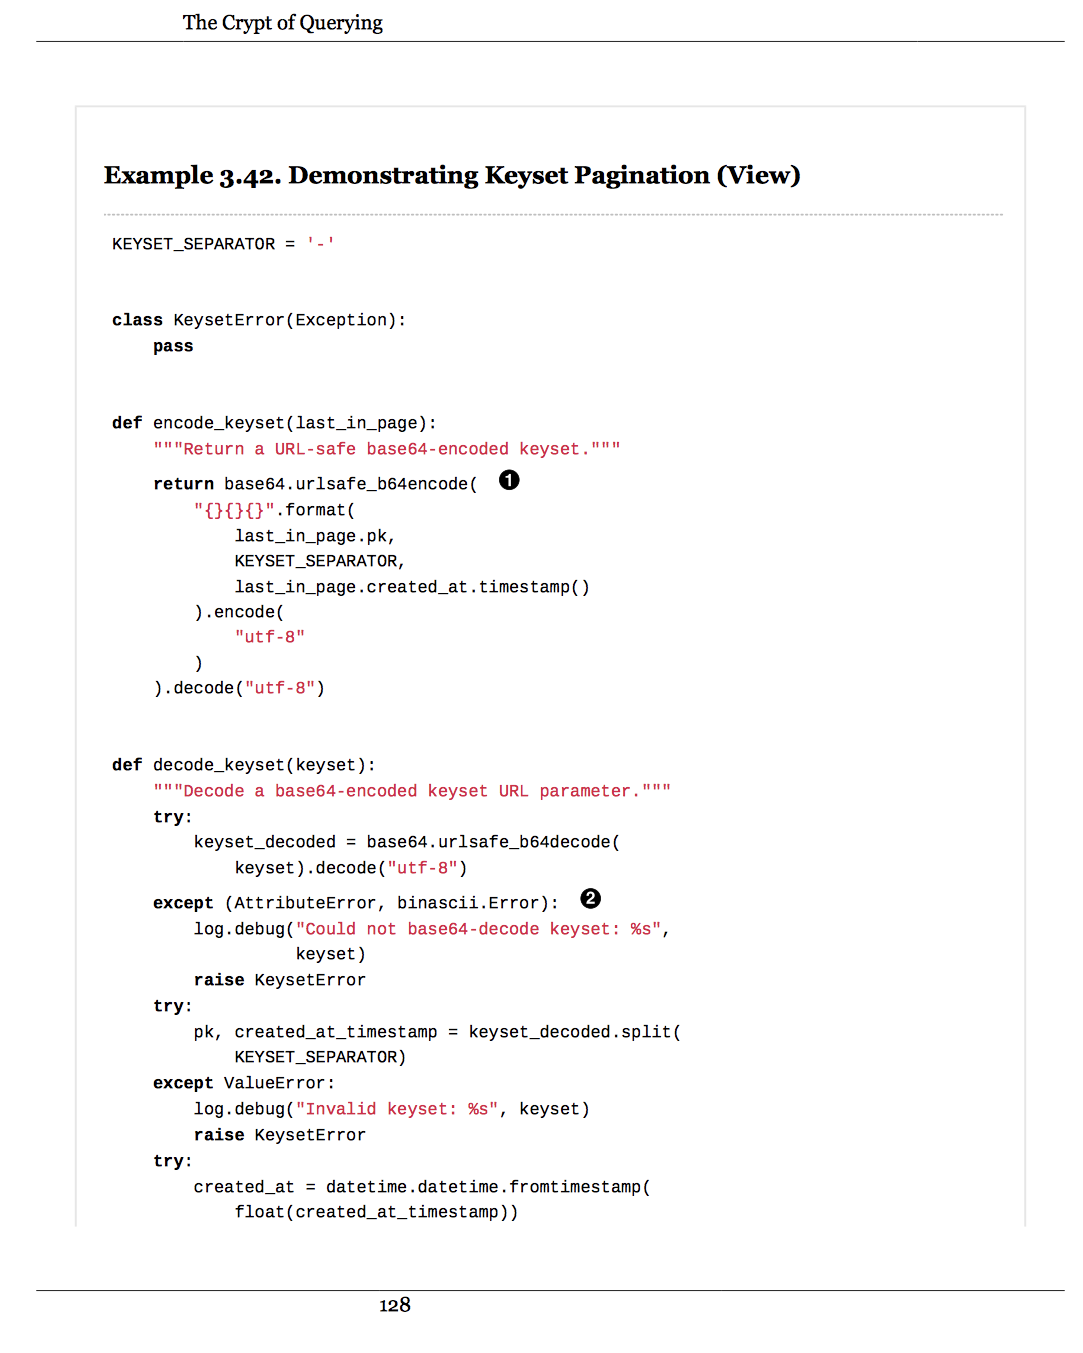 A sample of code from the book